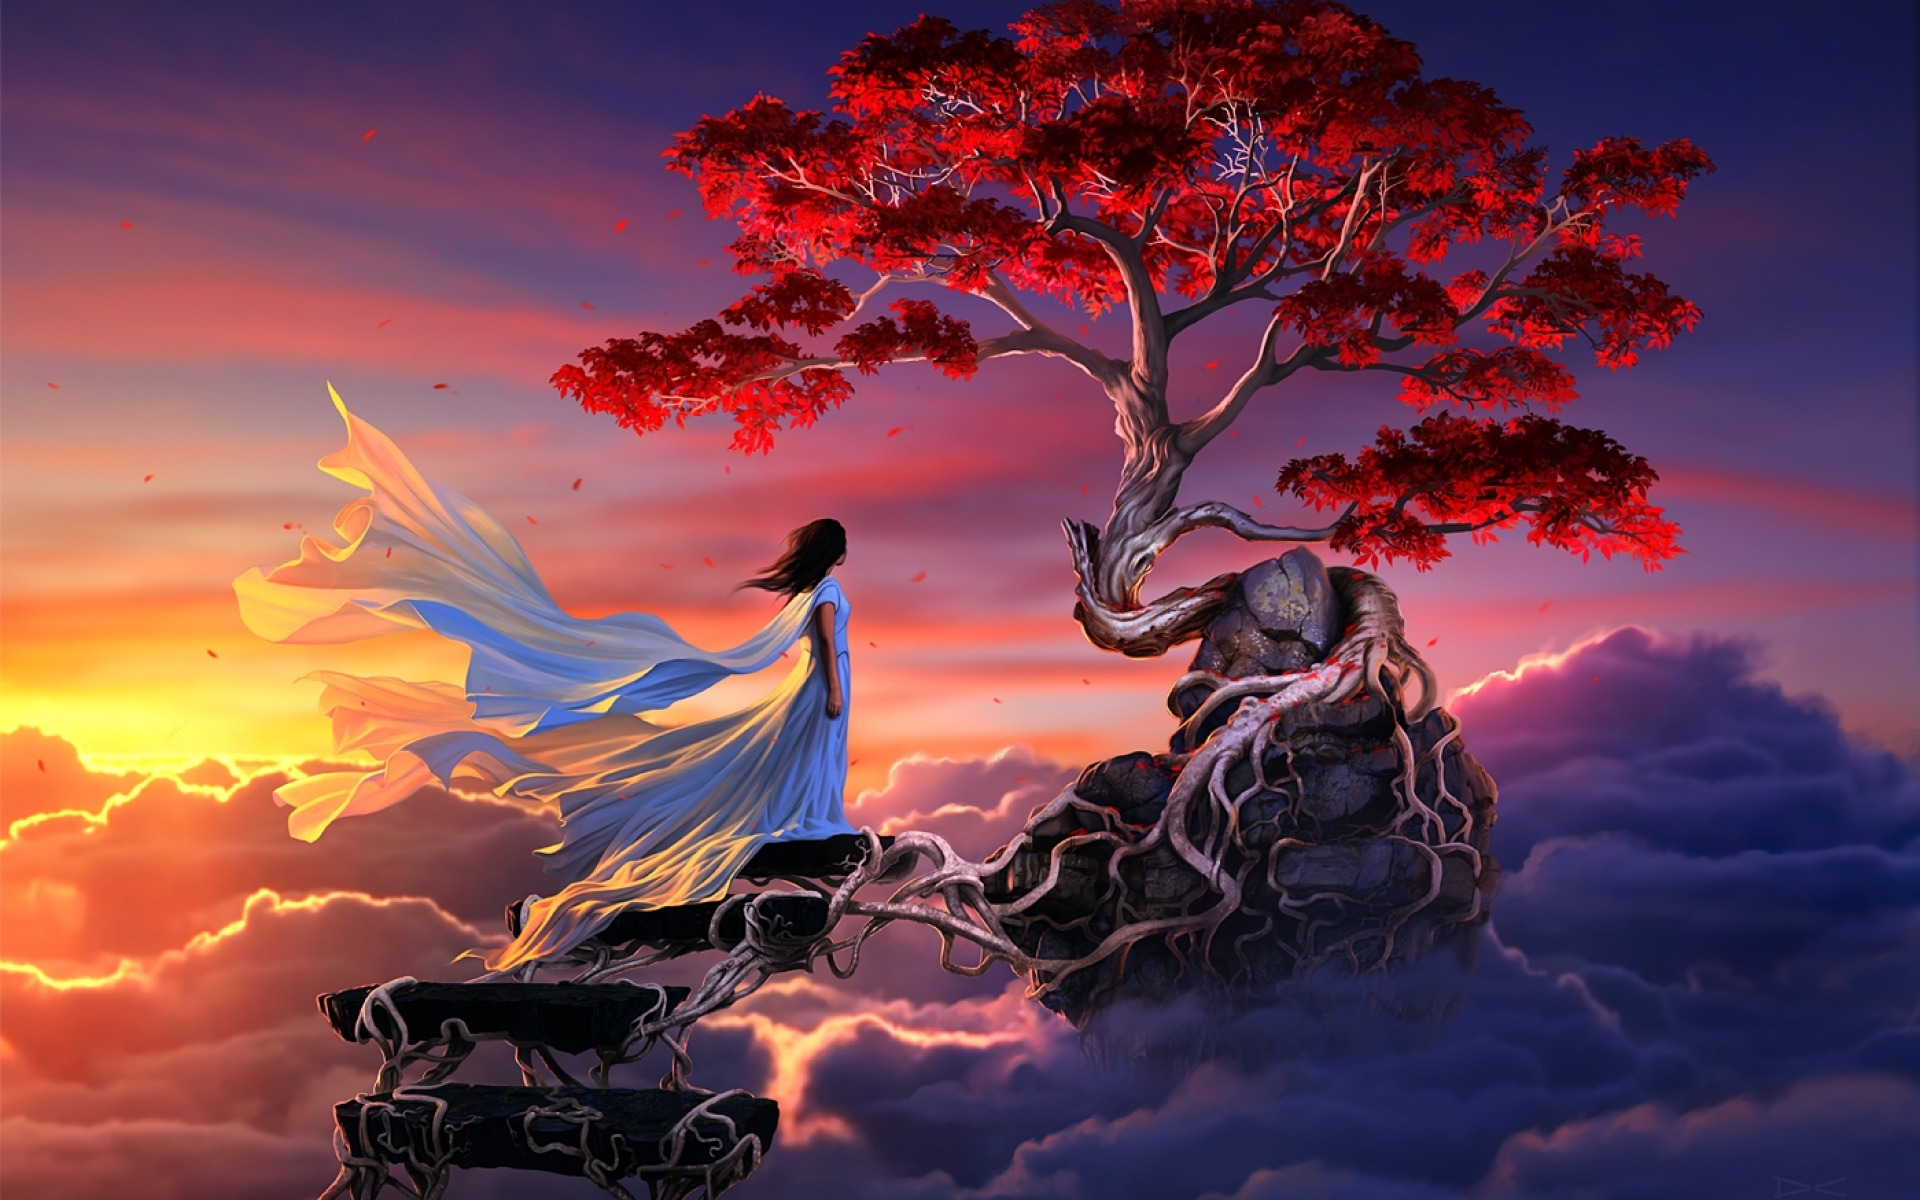 Kirschbaum Wallpaper Woman Steps Sky Sakura Tree Wallpapers Woman Steps Sky